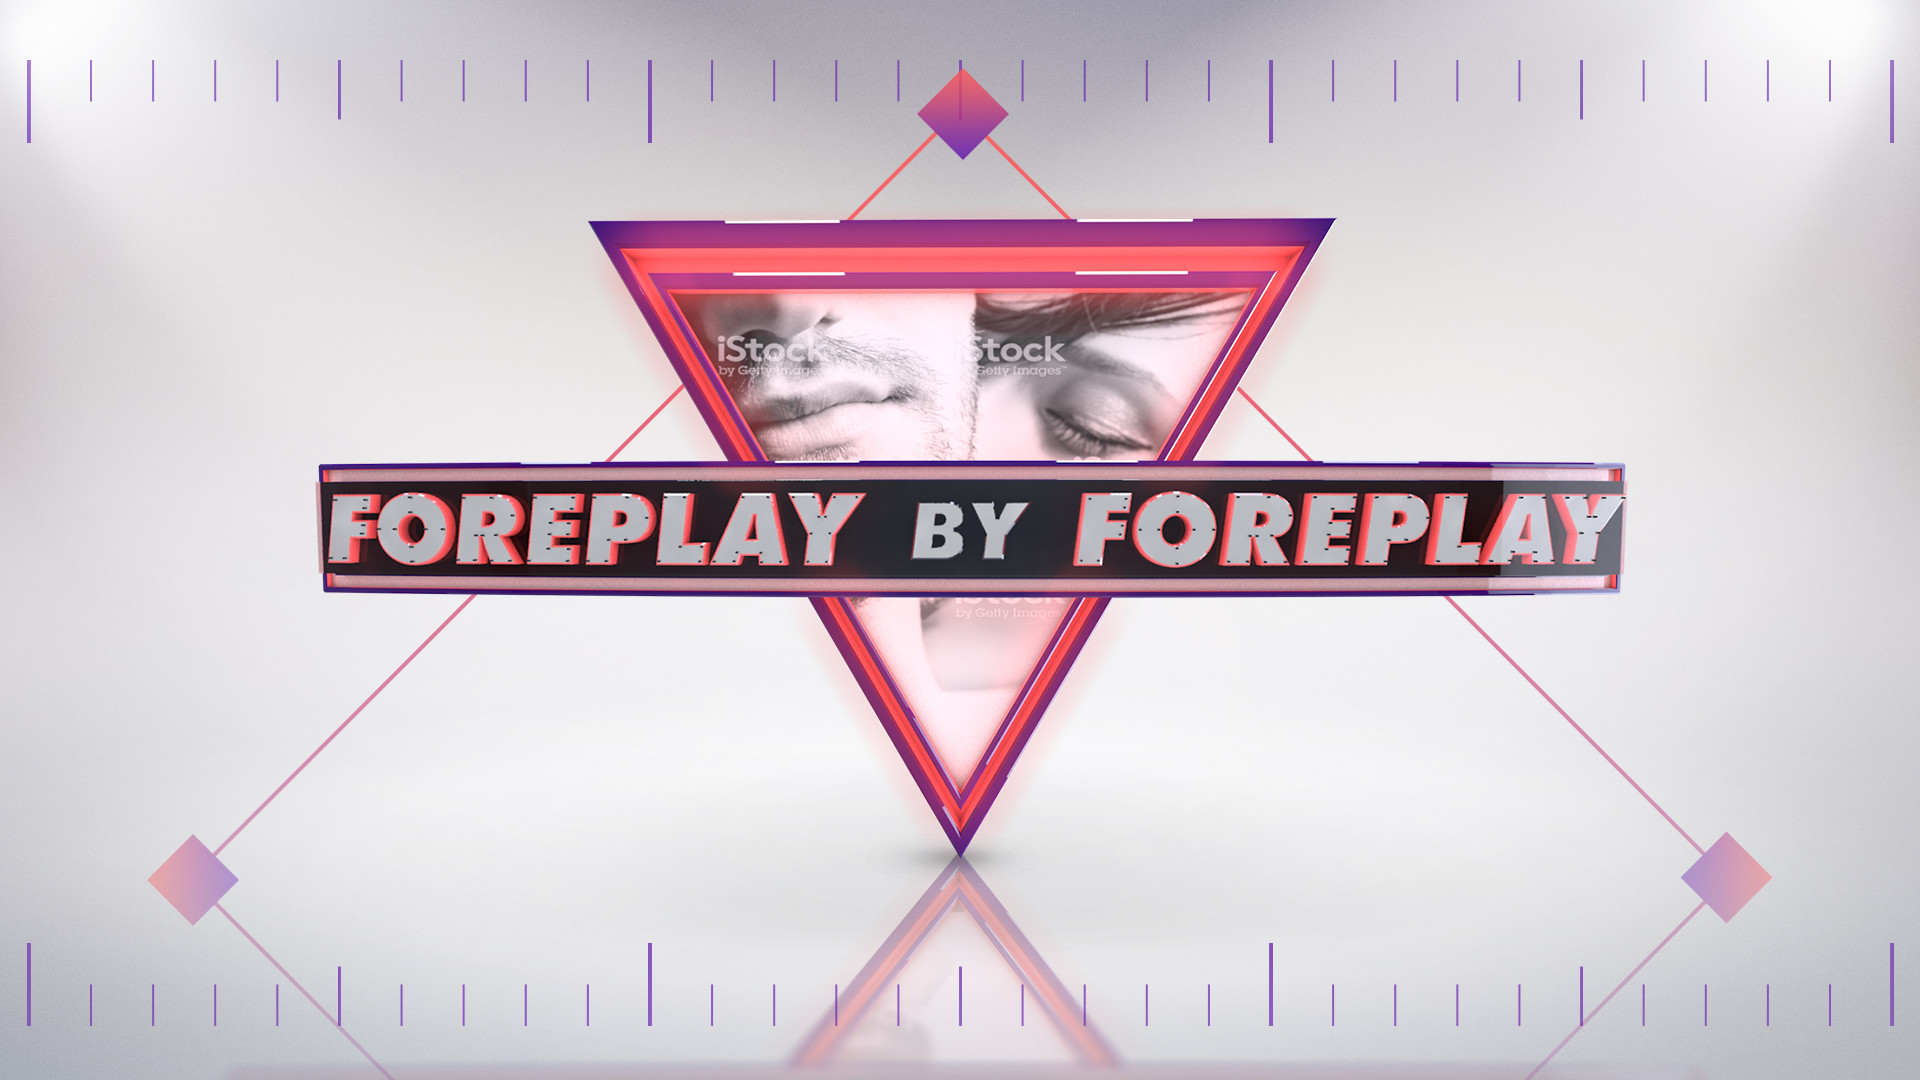 Foreplay x Foreplay Design_V1